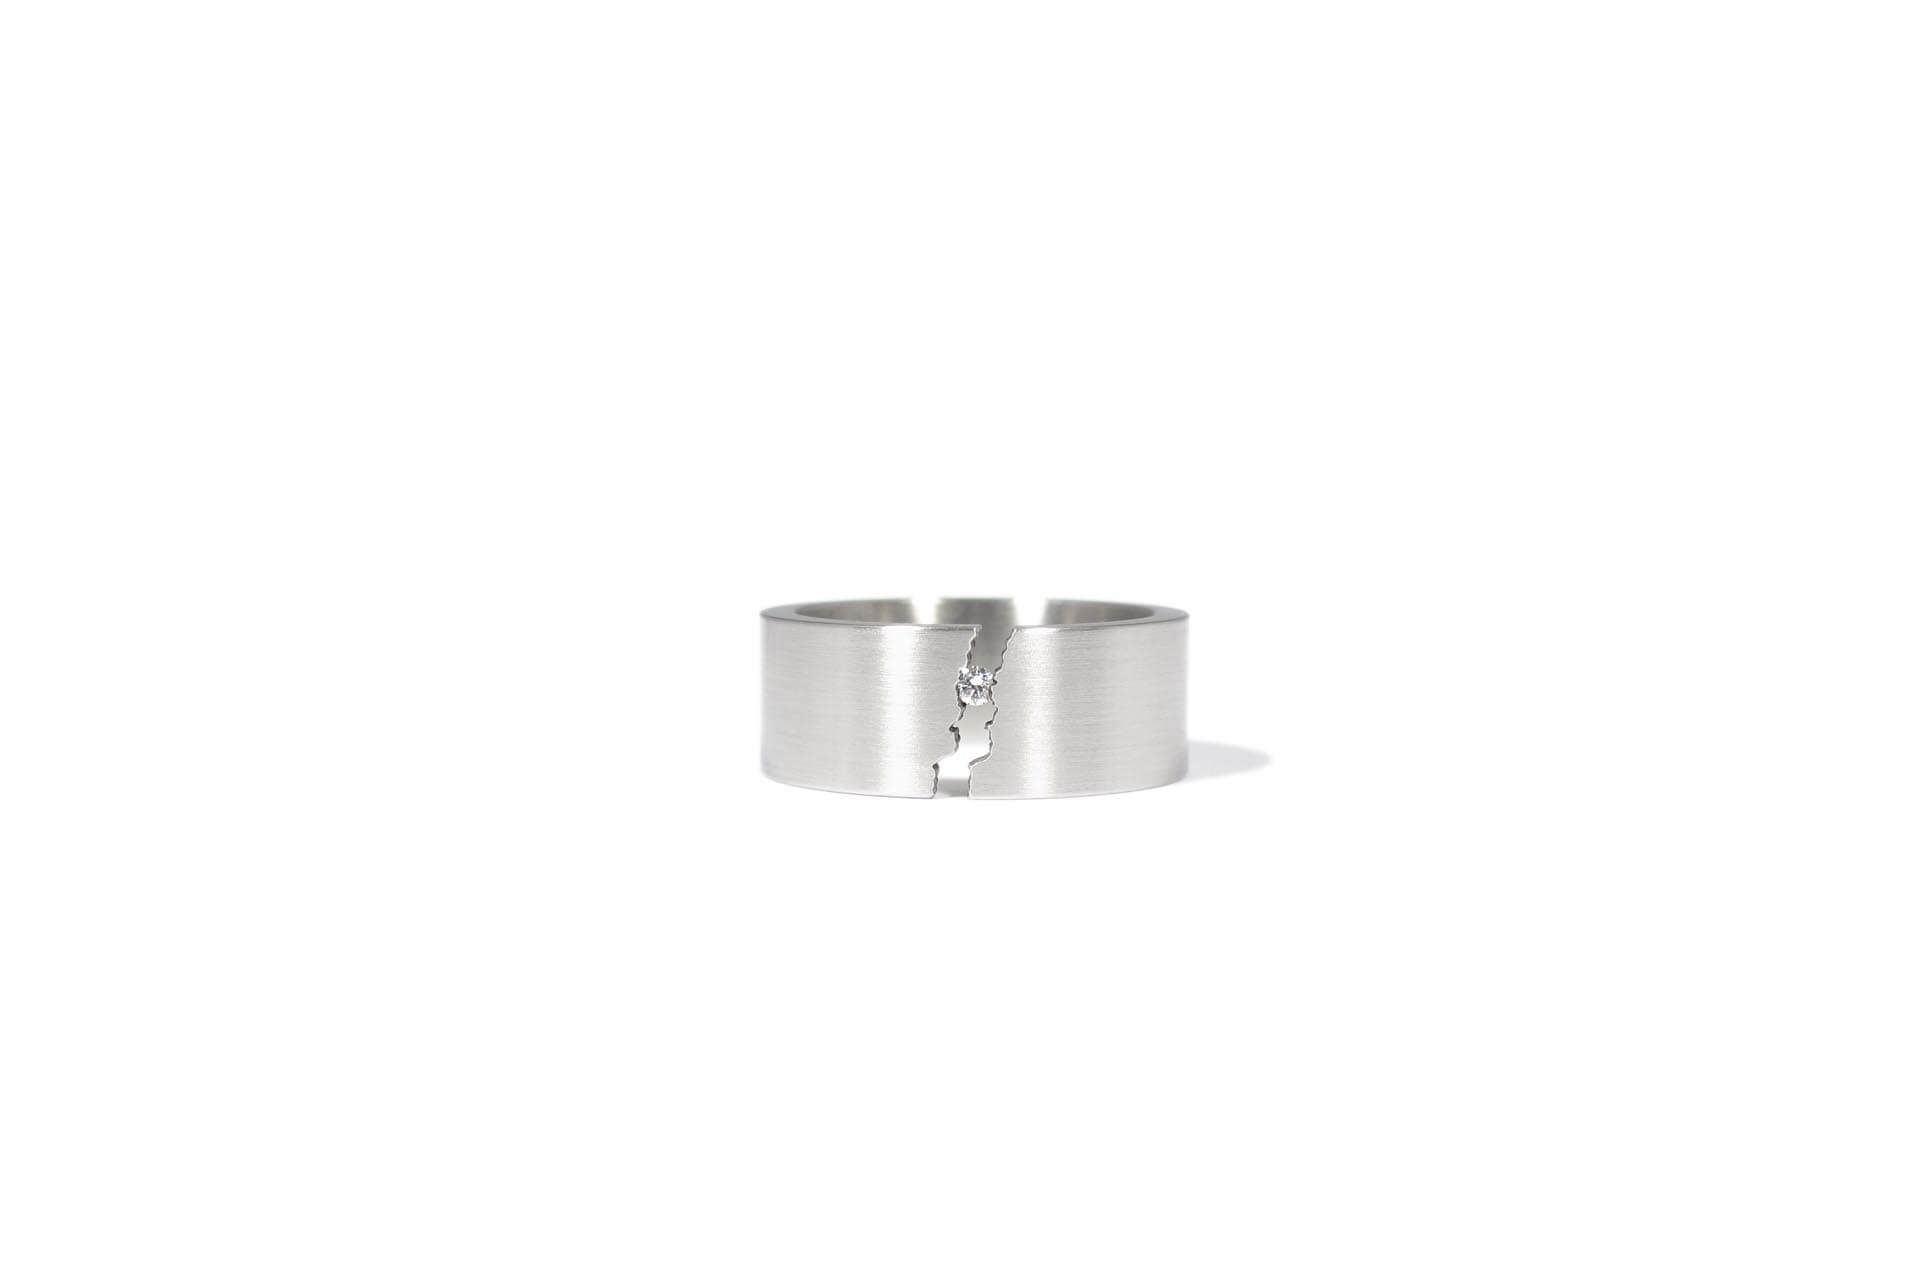 Patrick Malotki stainless steel ring with a diamond.